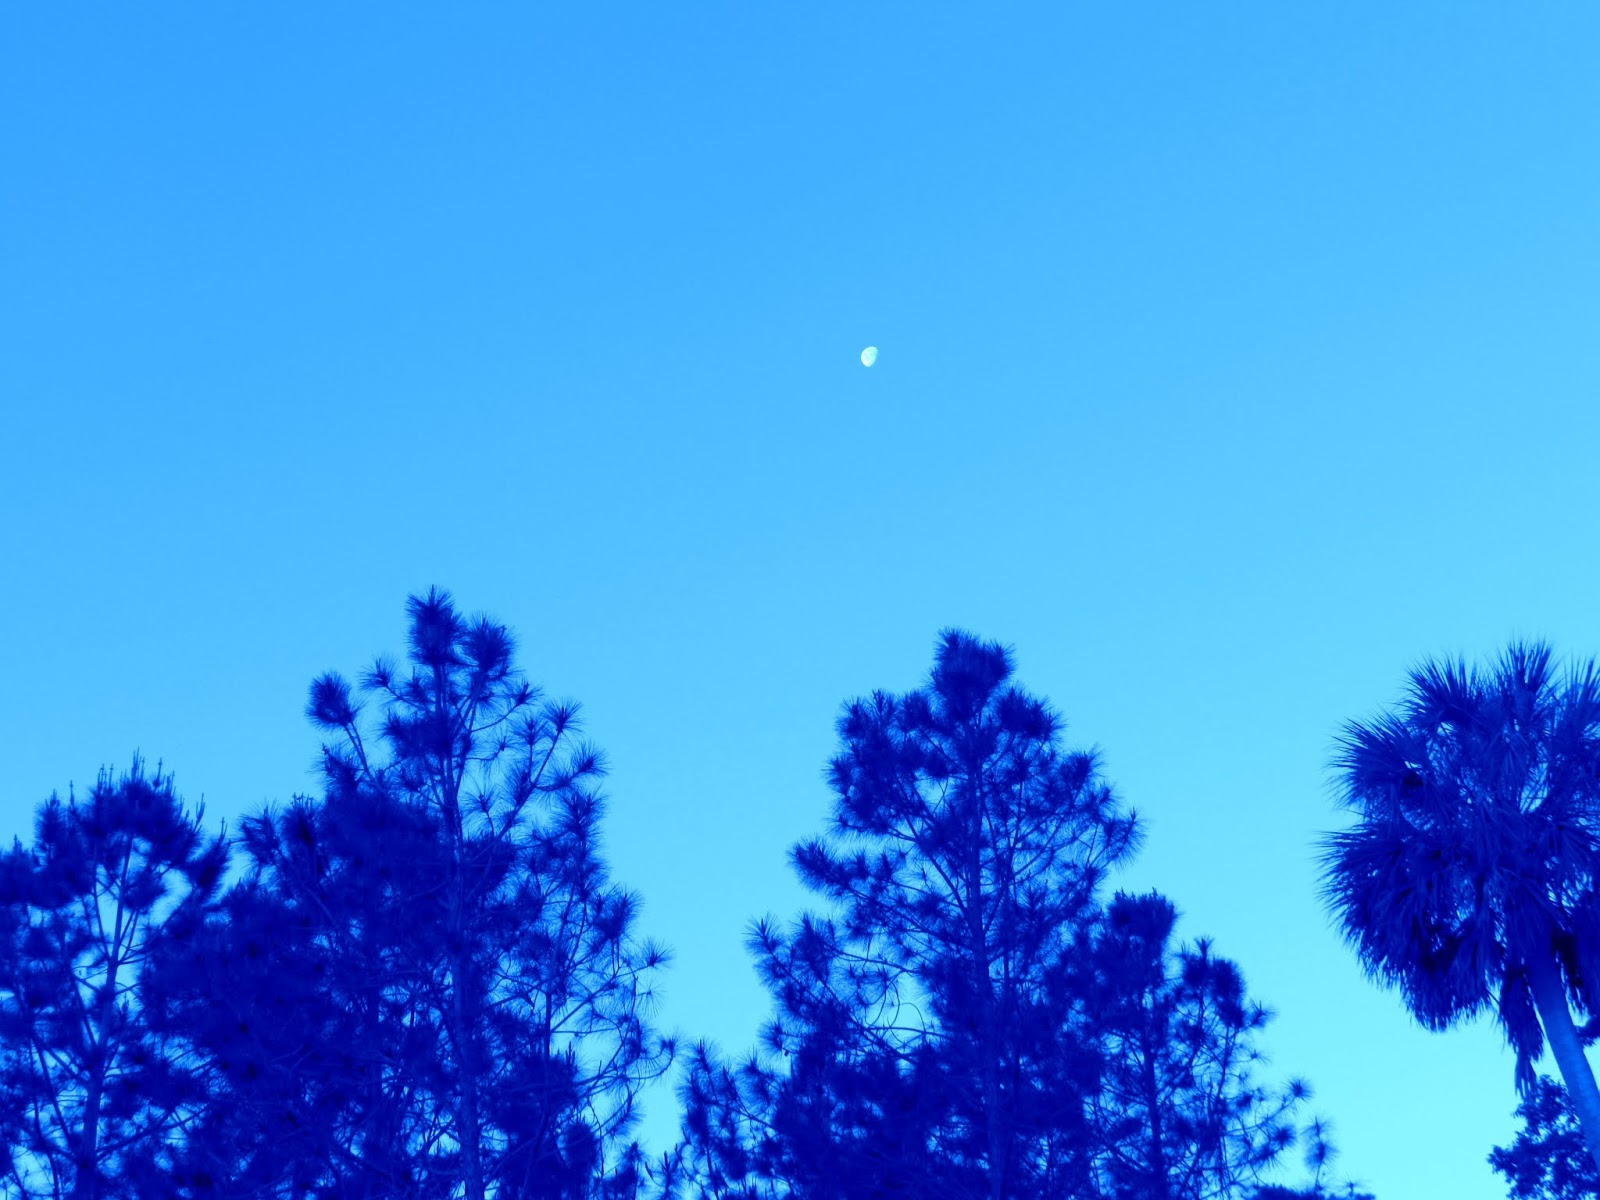 A clearing of trees in Florida with a sliver of moon at dusk